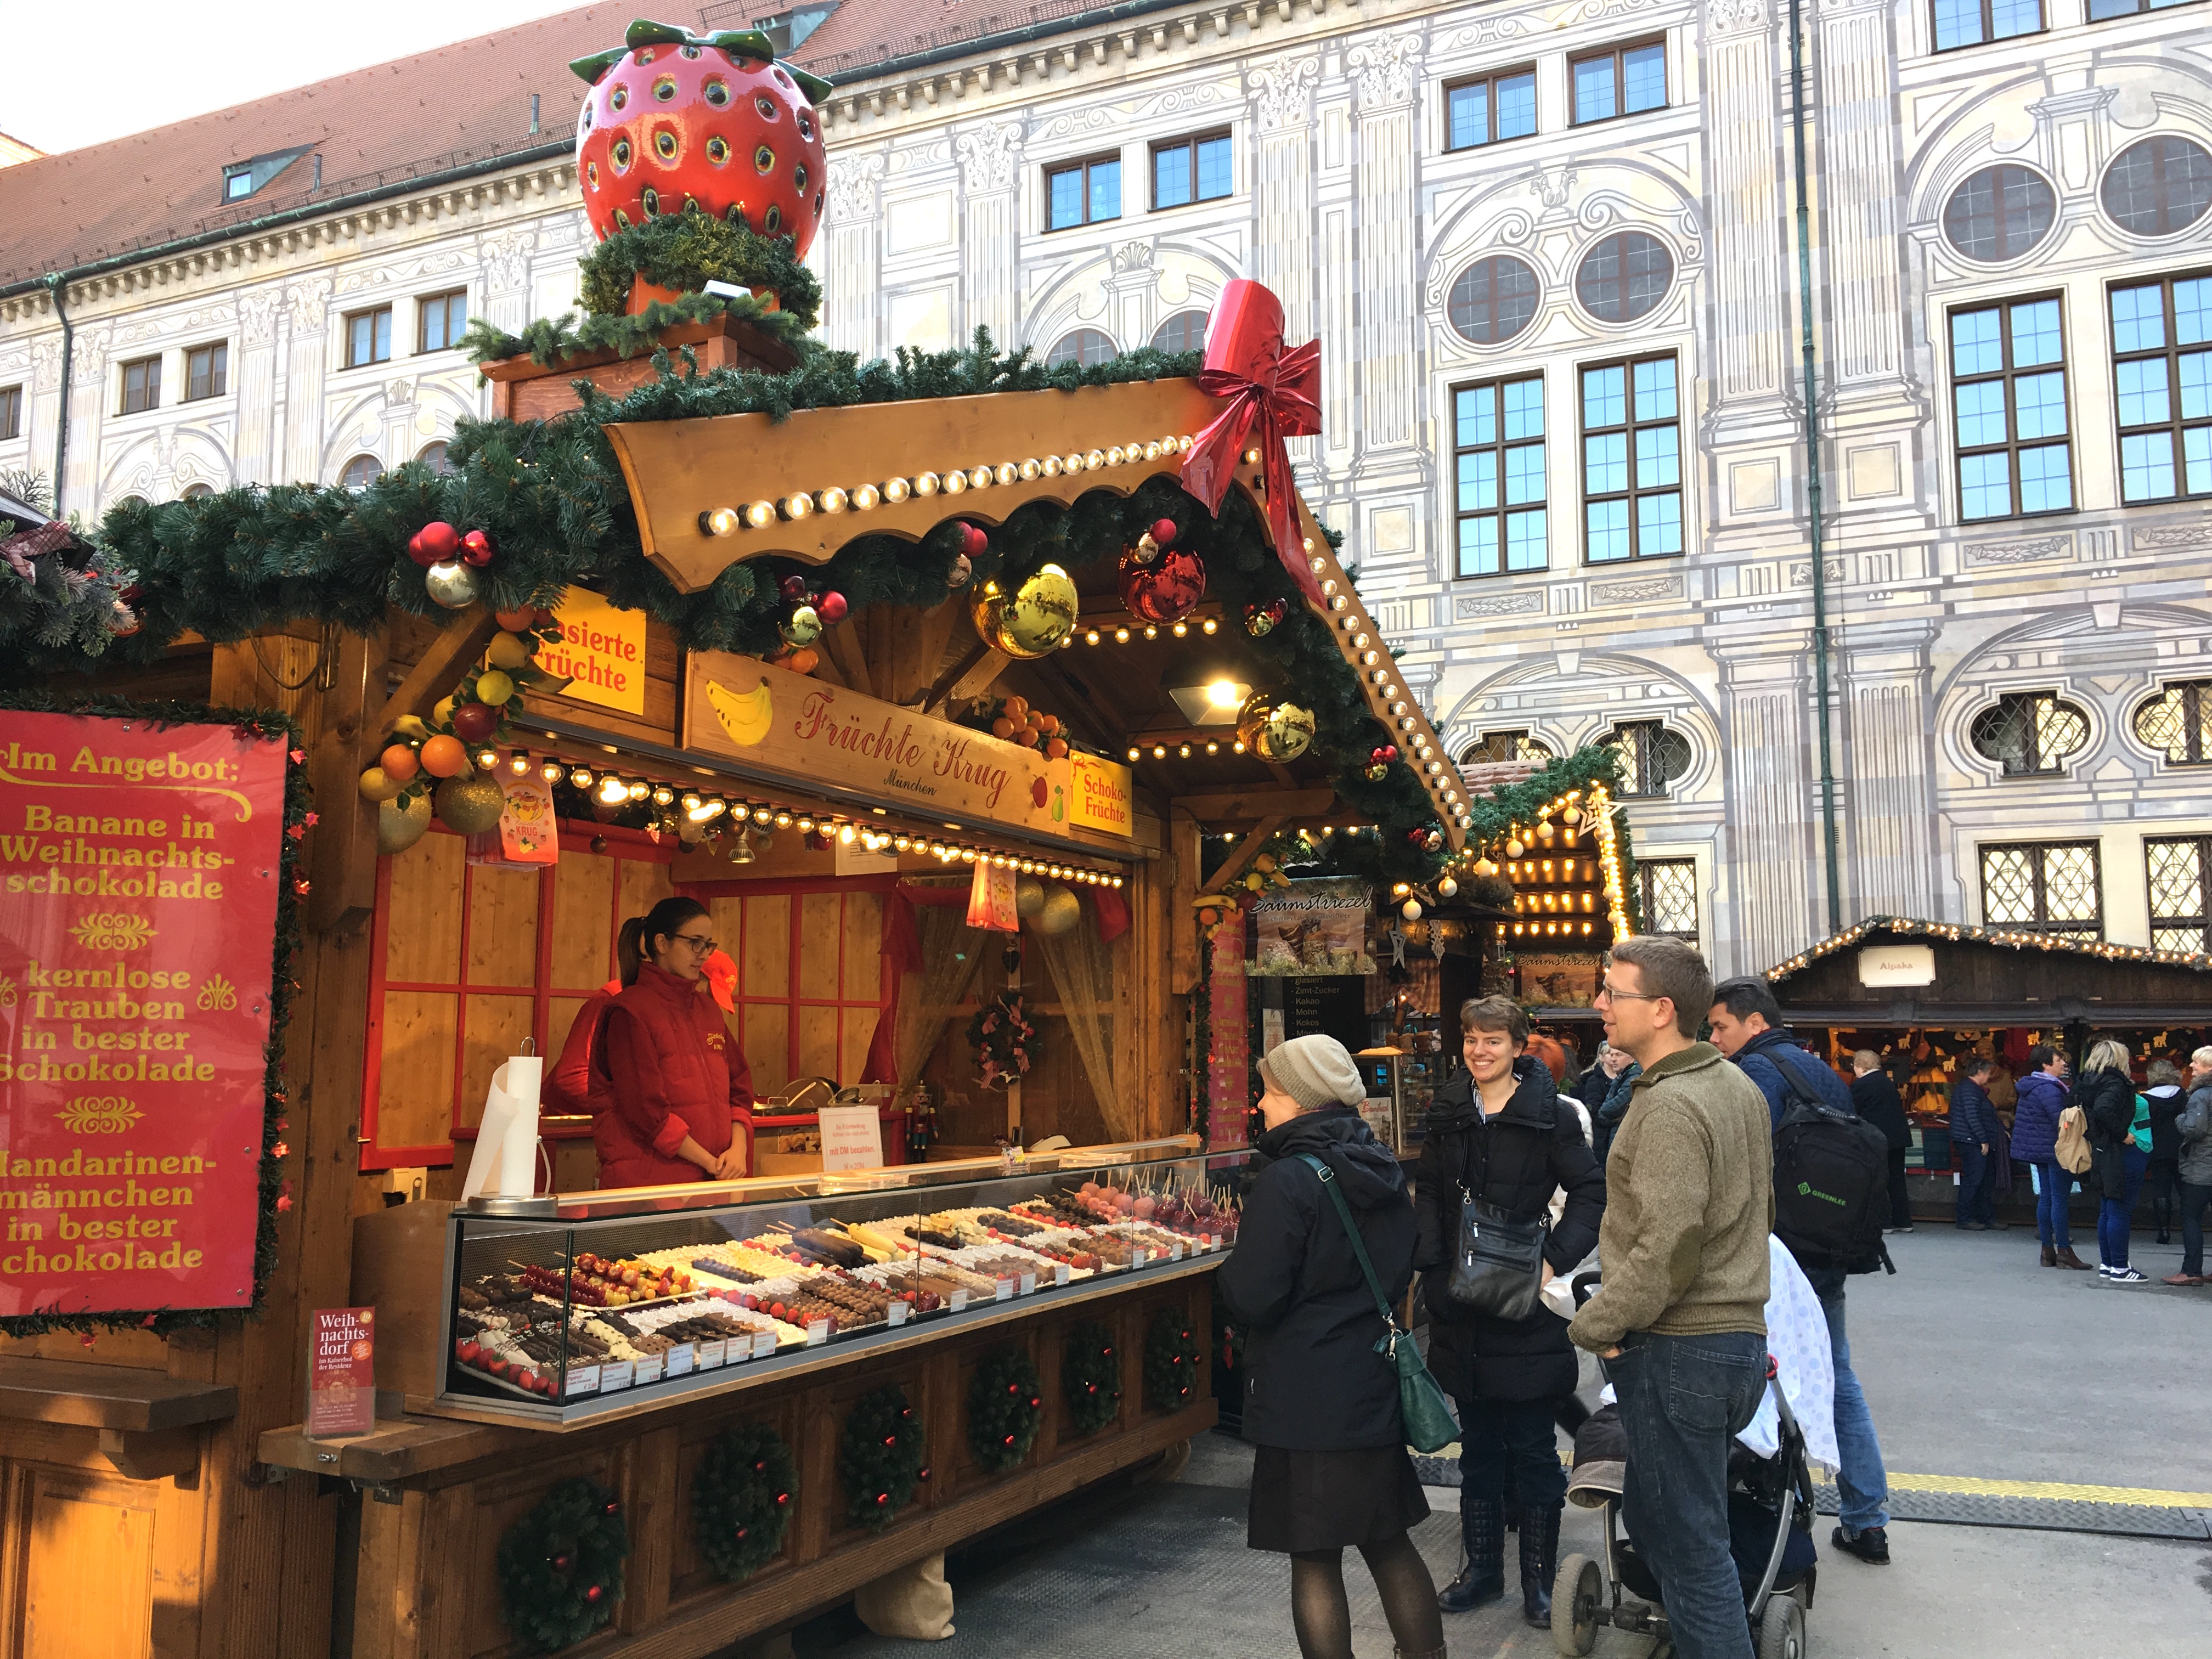 munichs first christmas market the weihnachtsdorf opened the next day in the courtyard of the royal residenz and beth stopped by on her way to class